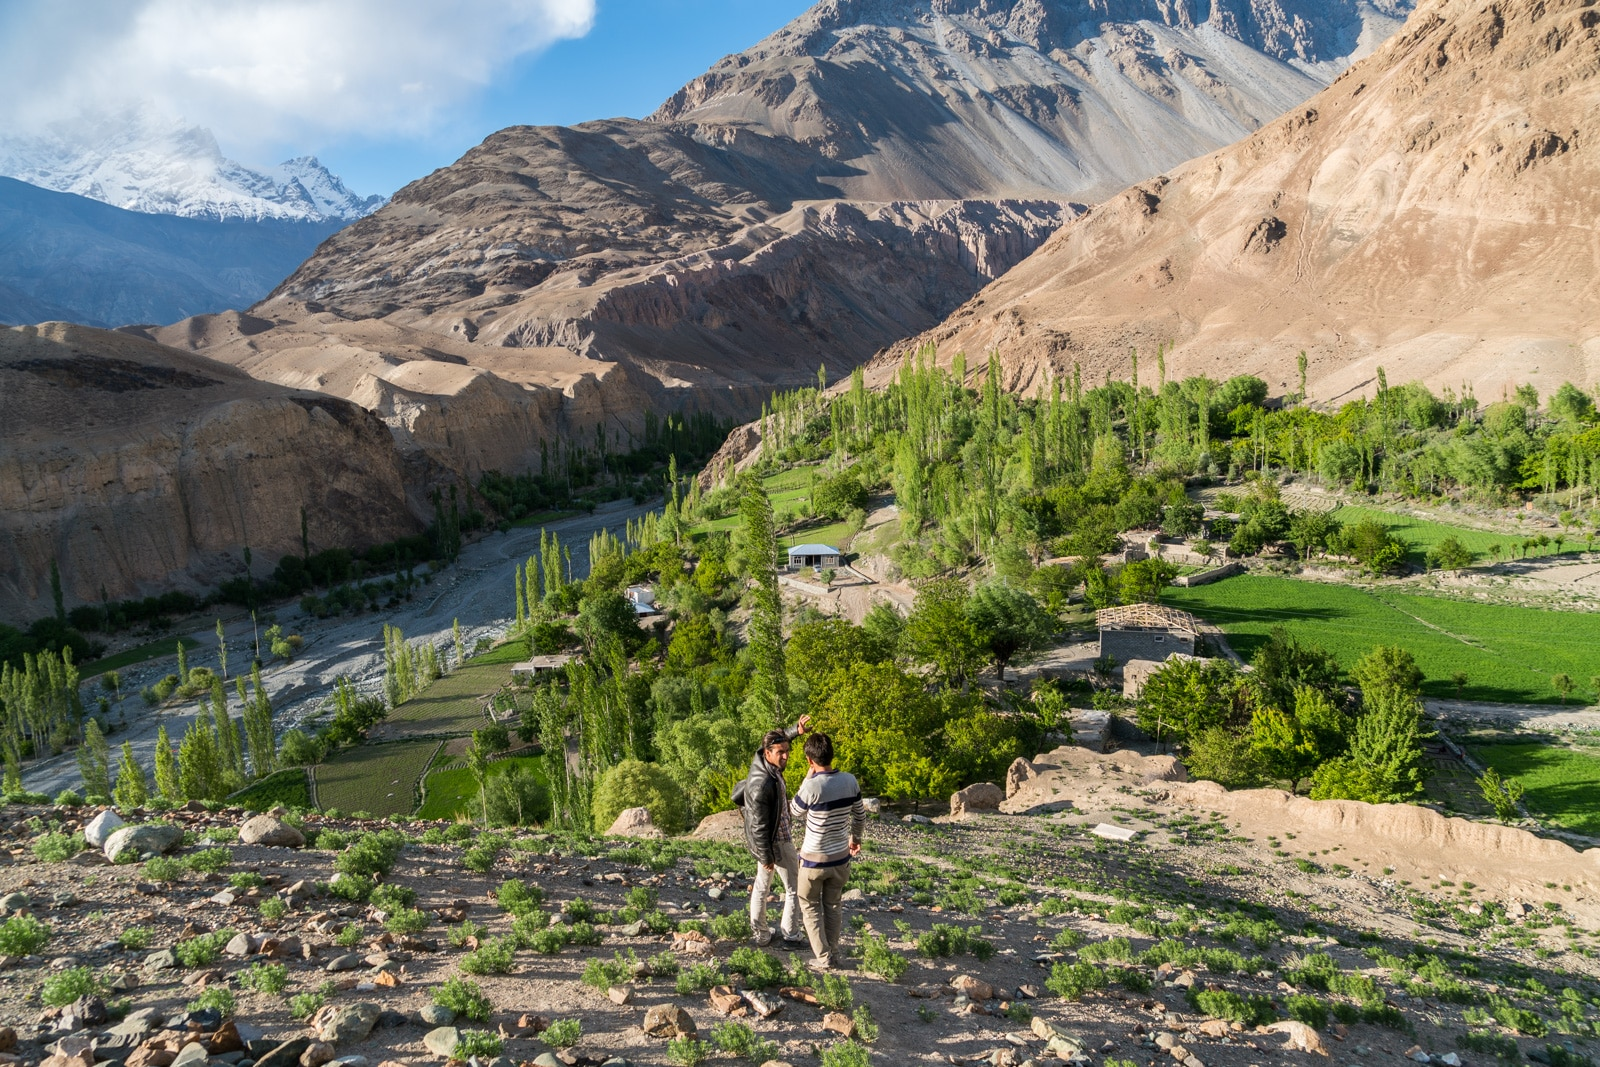 Ways to get more off the beaten track while traveling - Setting sun as boys climb a mountain in Yasin Valley, Pakistan - Lost With Purpose travel blog